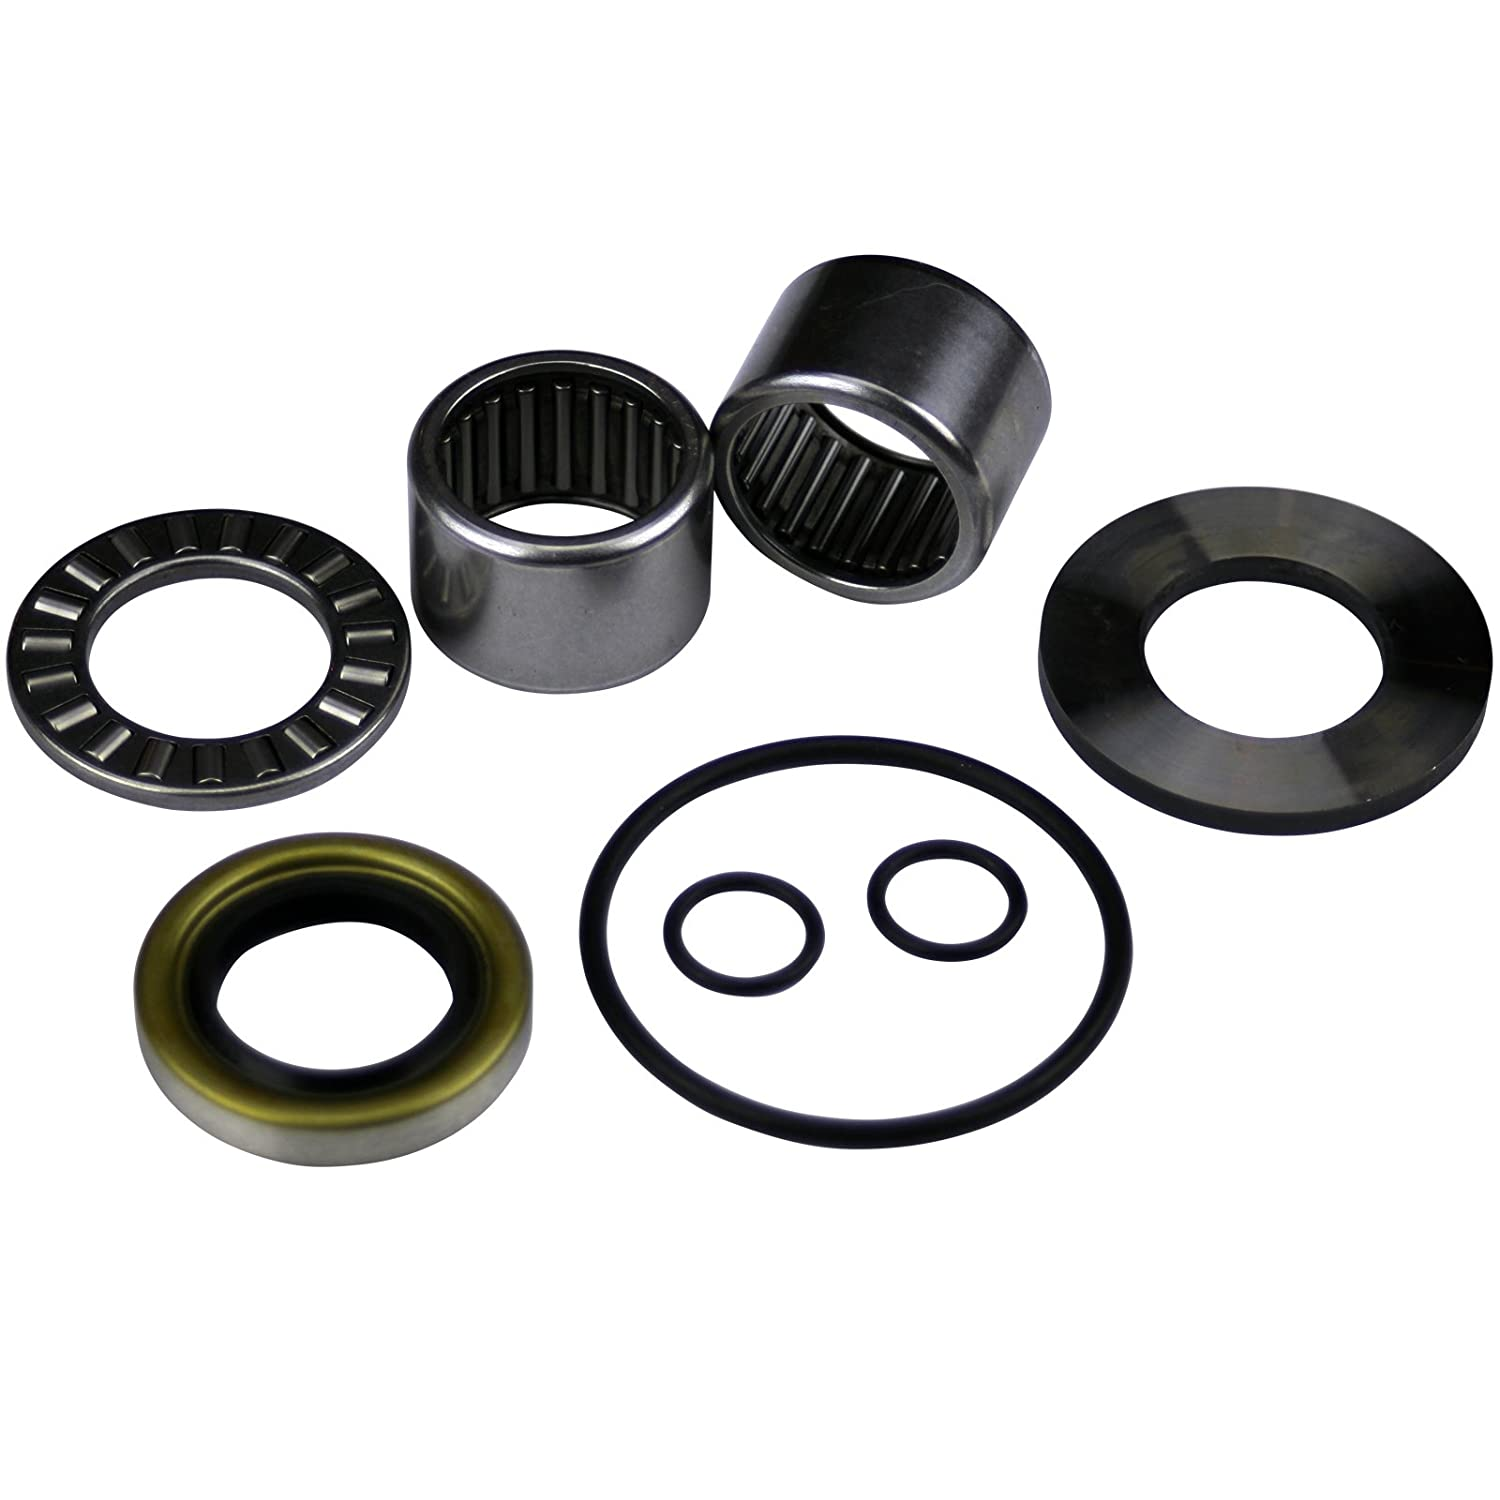 Se Ad For Exact Model /& Year Fit Fits MANY HX GTX//RFI//LTD Deluxe SeaDoo Jet Pump Rebuild Kit Wear Ring Seal Shaft